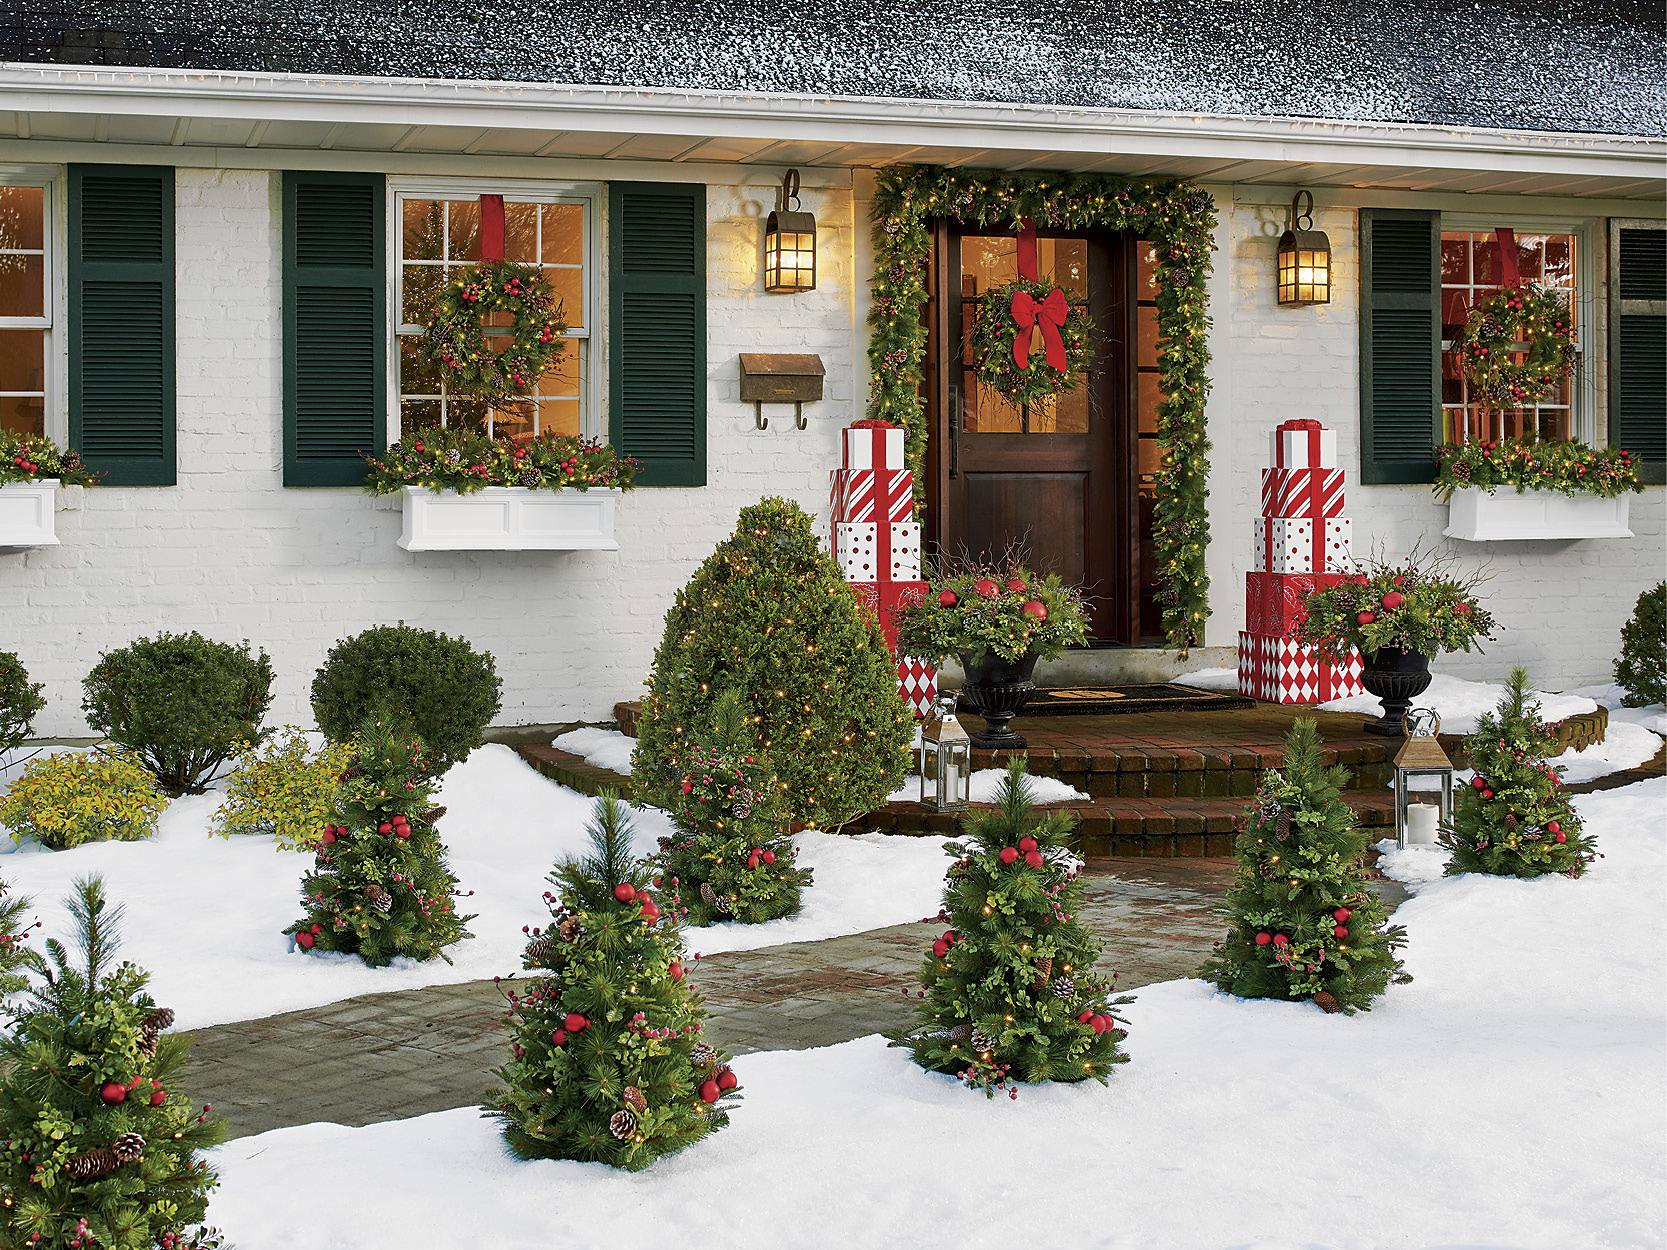 Christmas Porch Decorations 15 Holly Jolly Looks Grandin Road Blog,Home Decor Newspaper Art And Craft